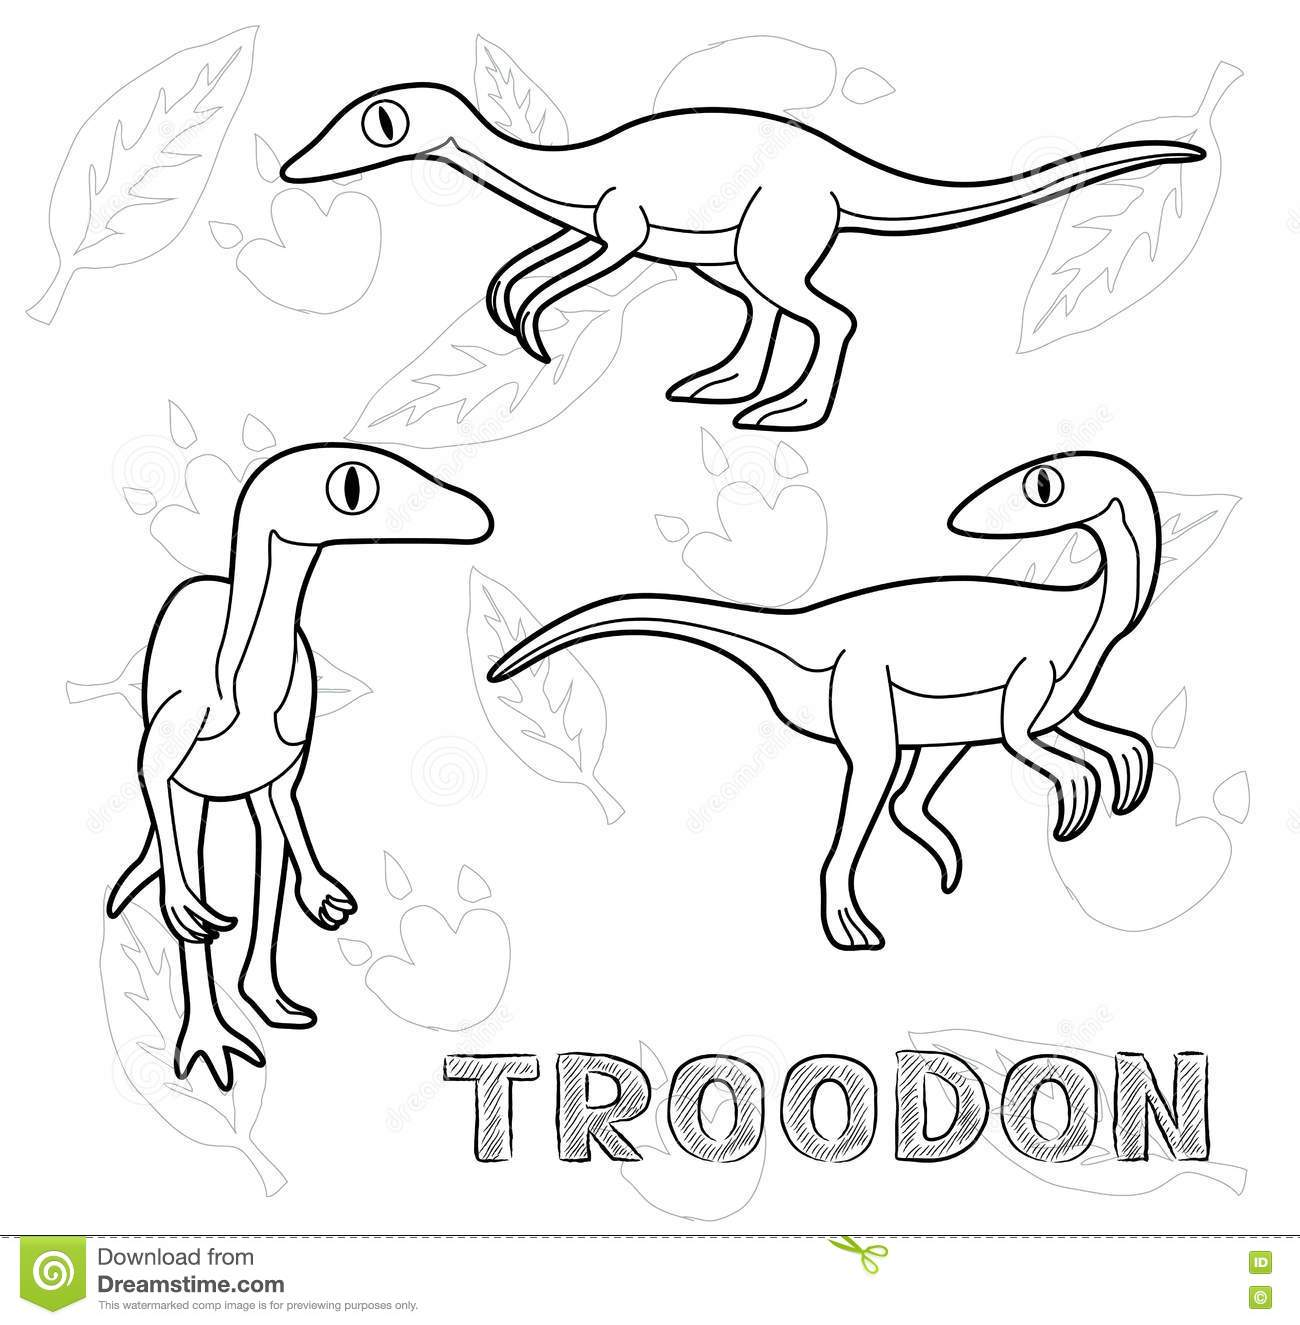 troodon coloring page dinosaur troodon cartoon vector illustration monochrome troodon page coloring